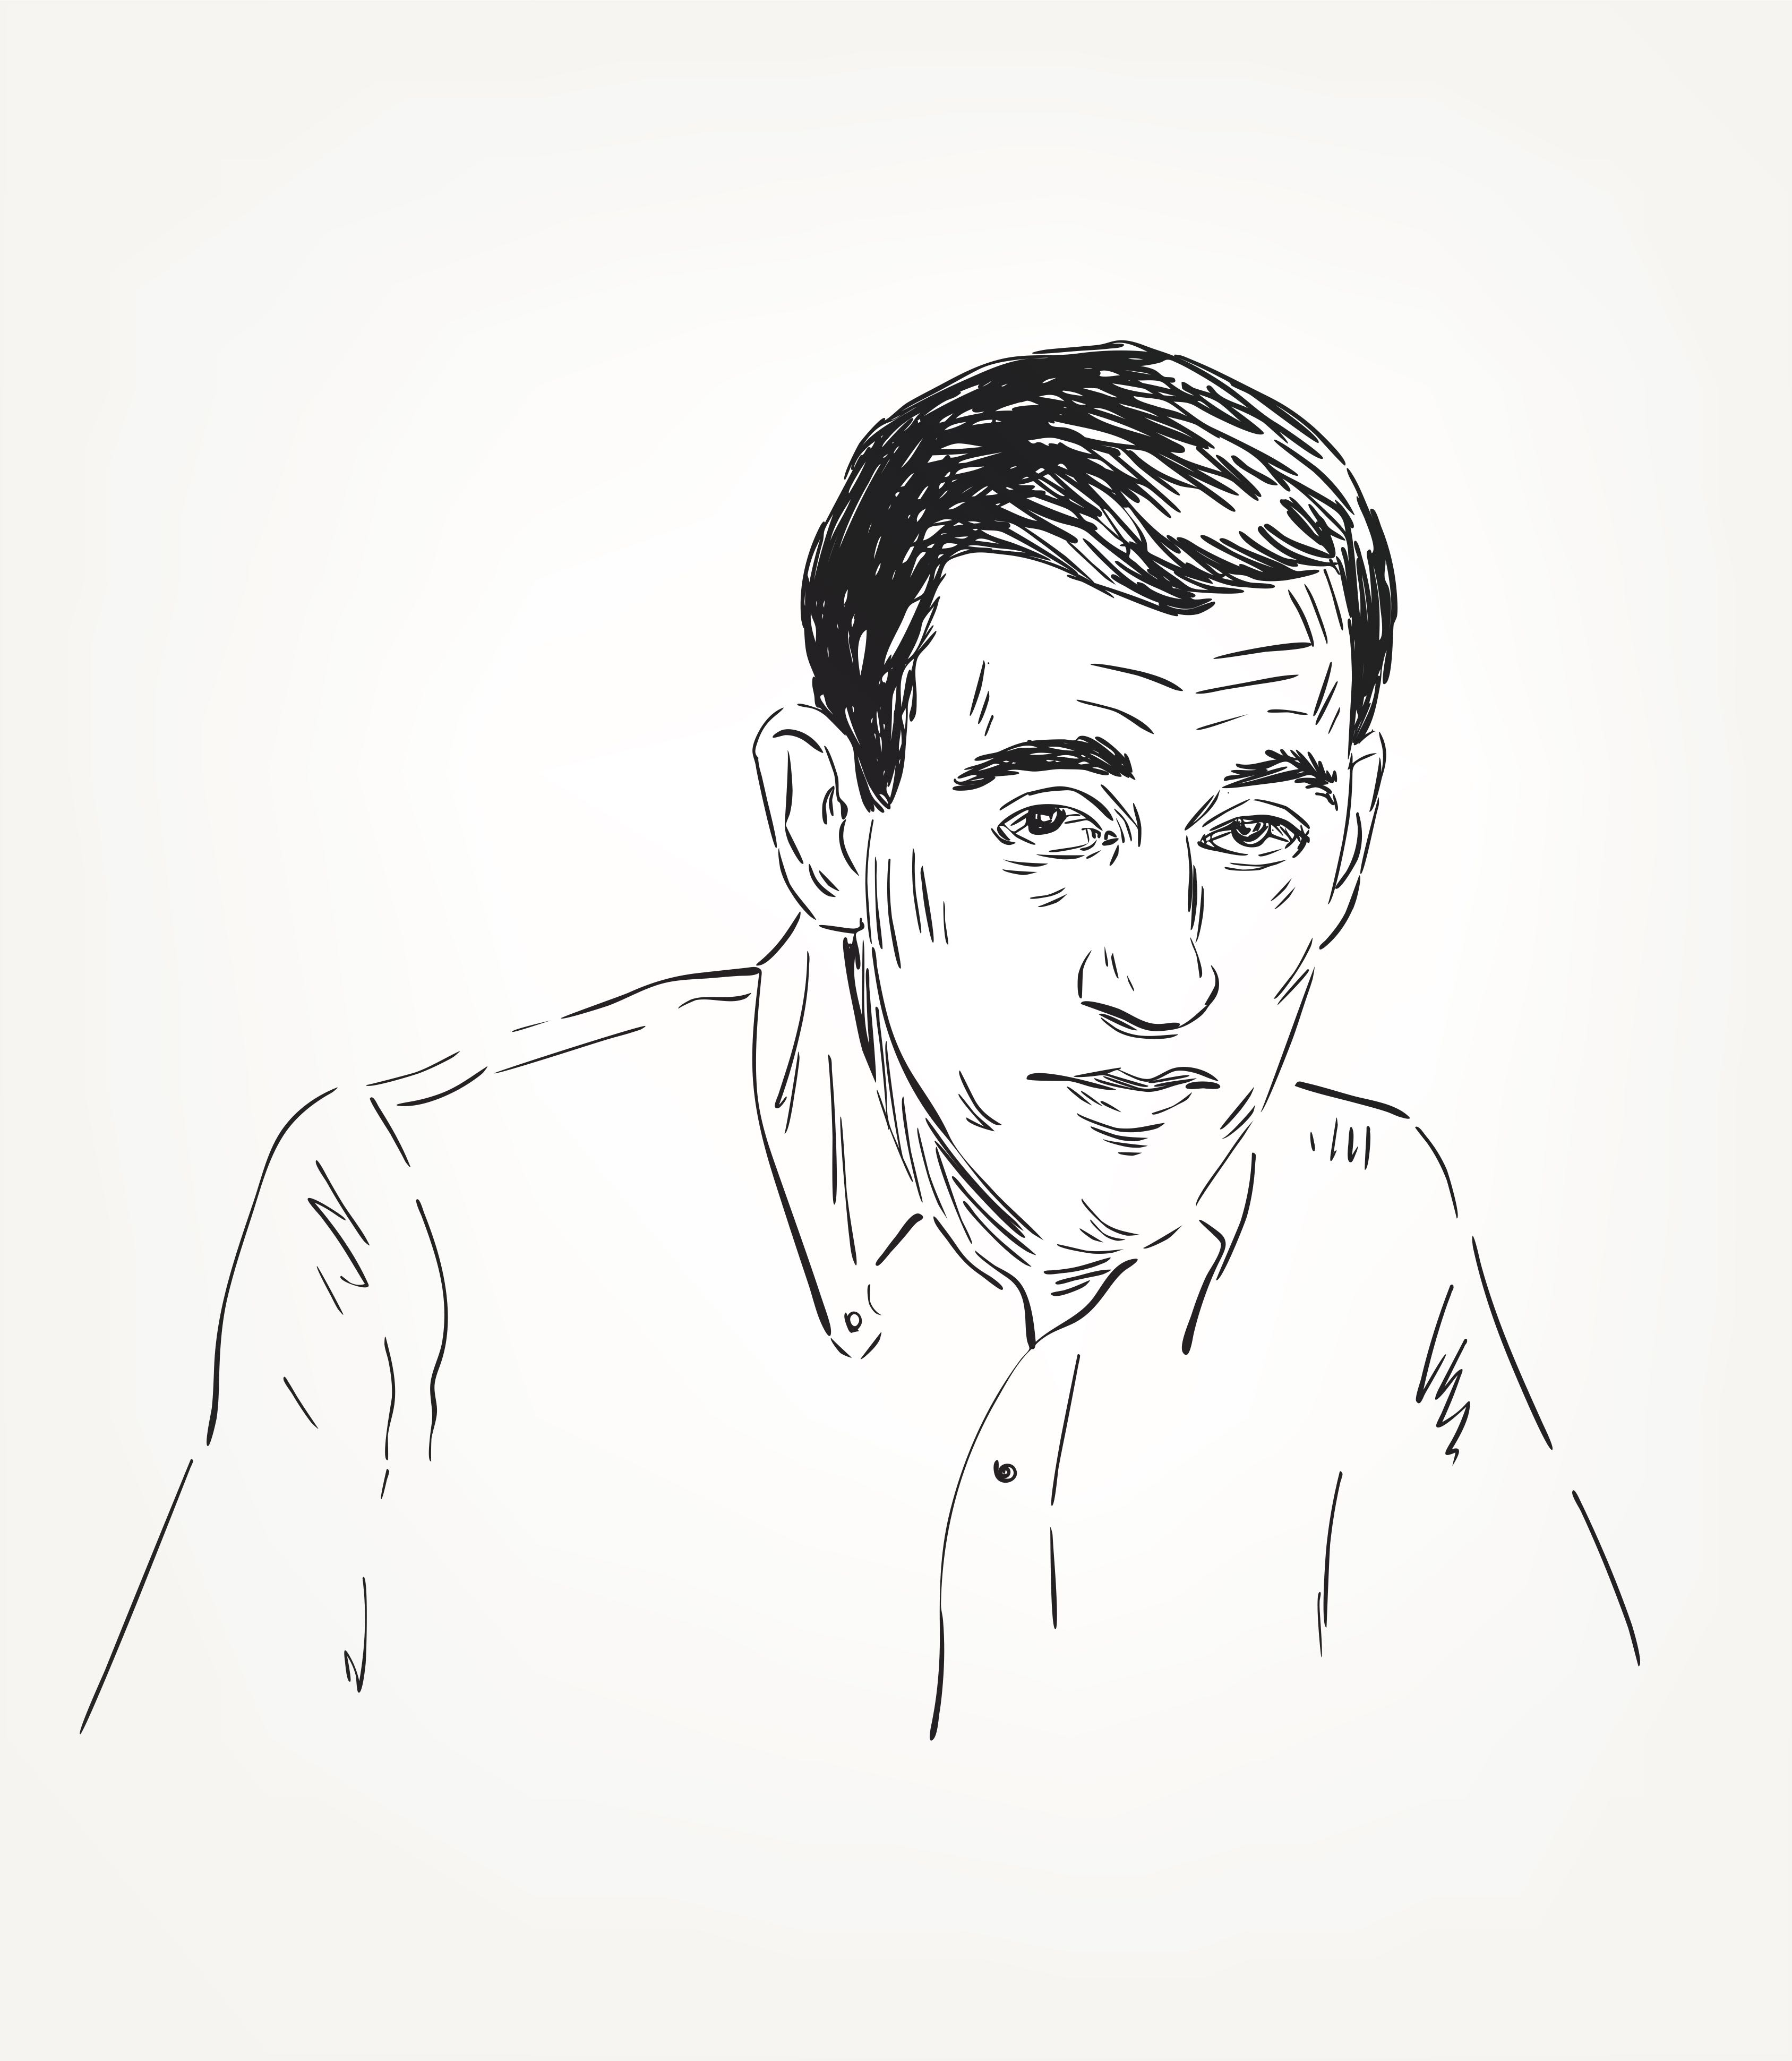 New work from J.D. Salinger? It's true, family confirms